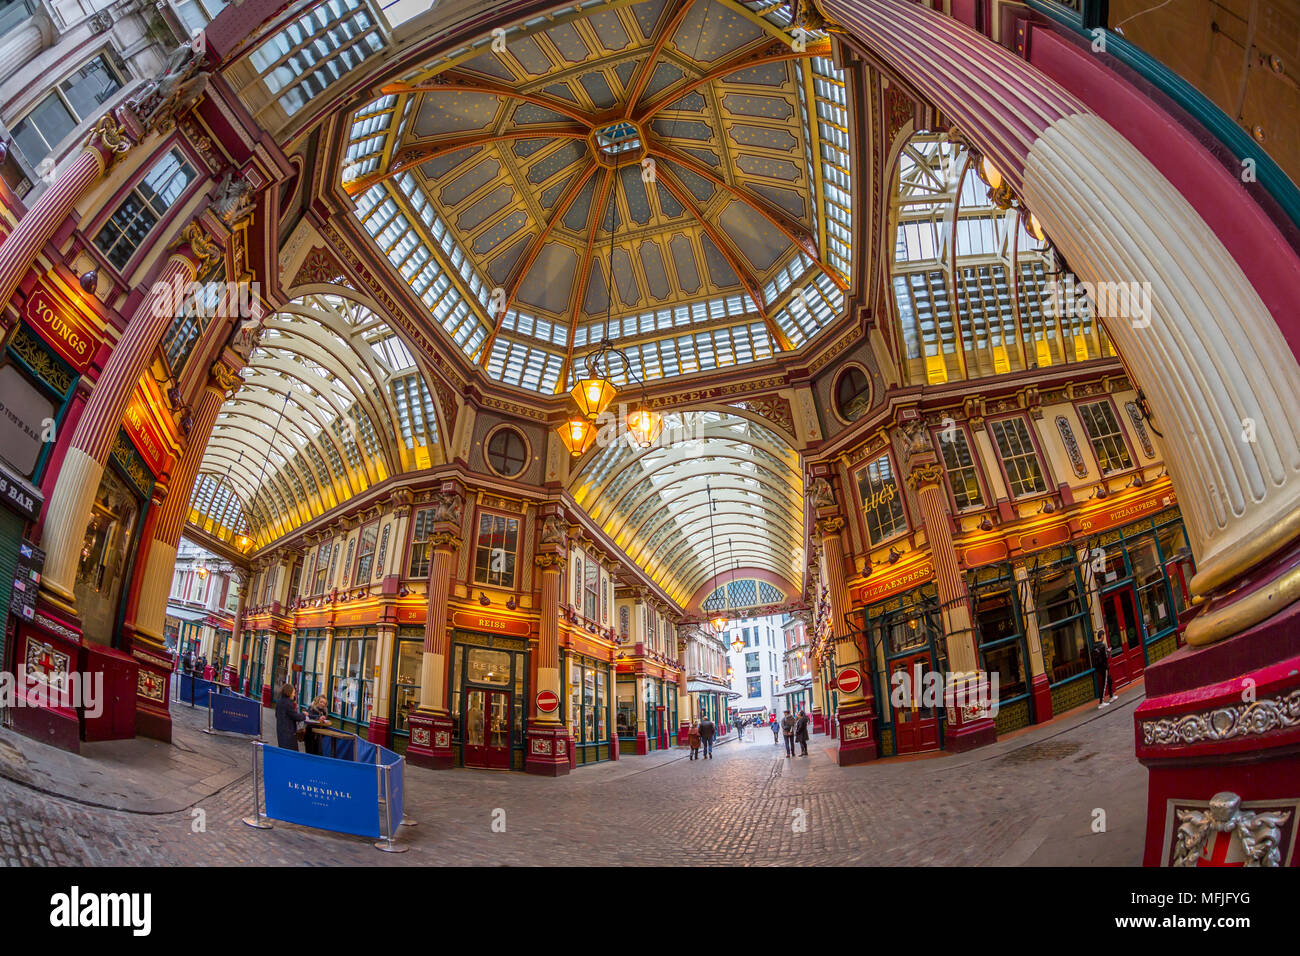 Fisheye view of interior of Leadenhall Market, The City, London, England, United Kingdom, Europe - Stock Image